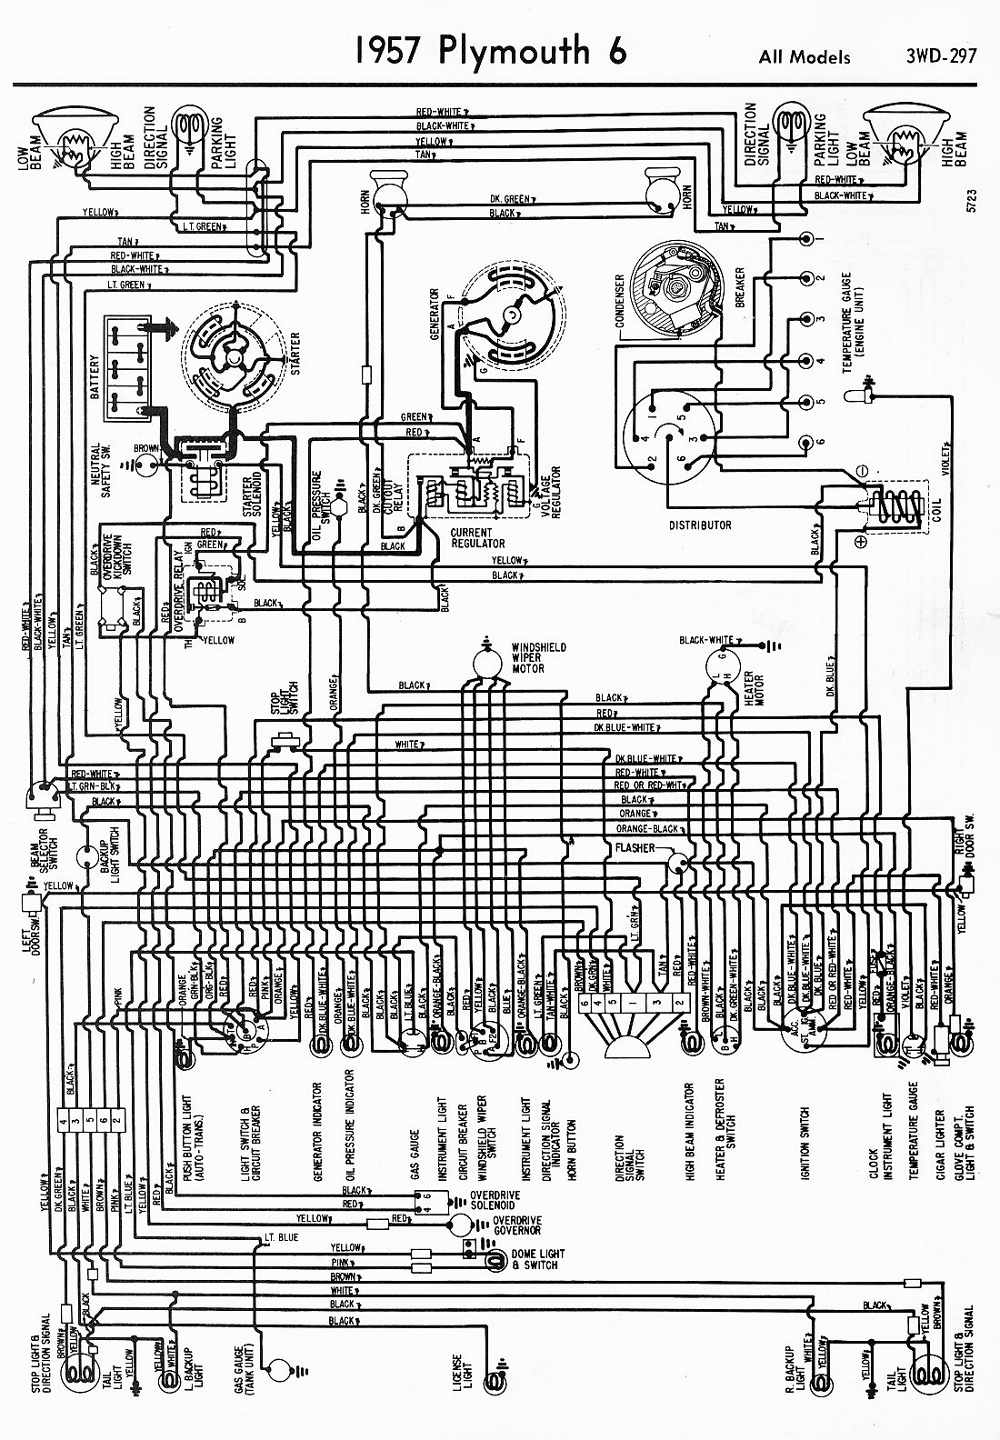 Intrigue Engine Diagram Get Free Image About Wiring Olds 1991 Fuse Box 1957 Oldsmobile Enthusiast Diagrams U2022 Rh Rasalibre Co